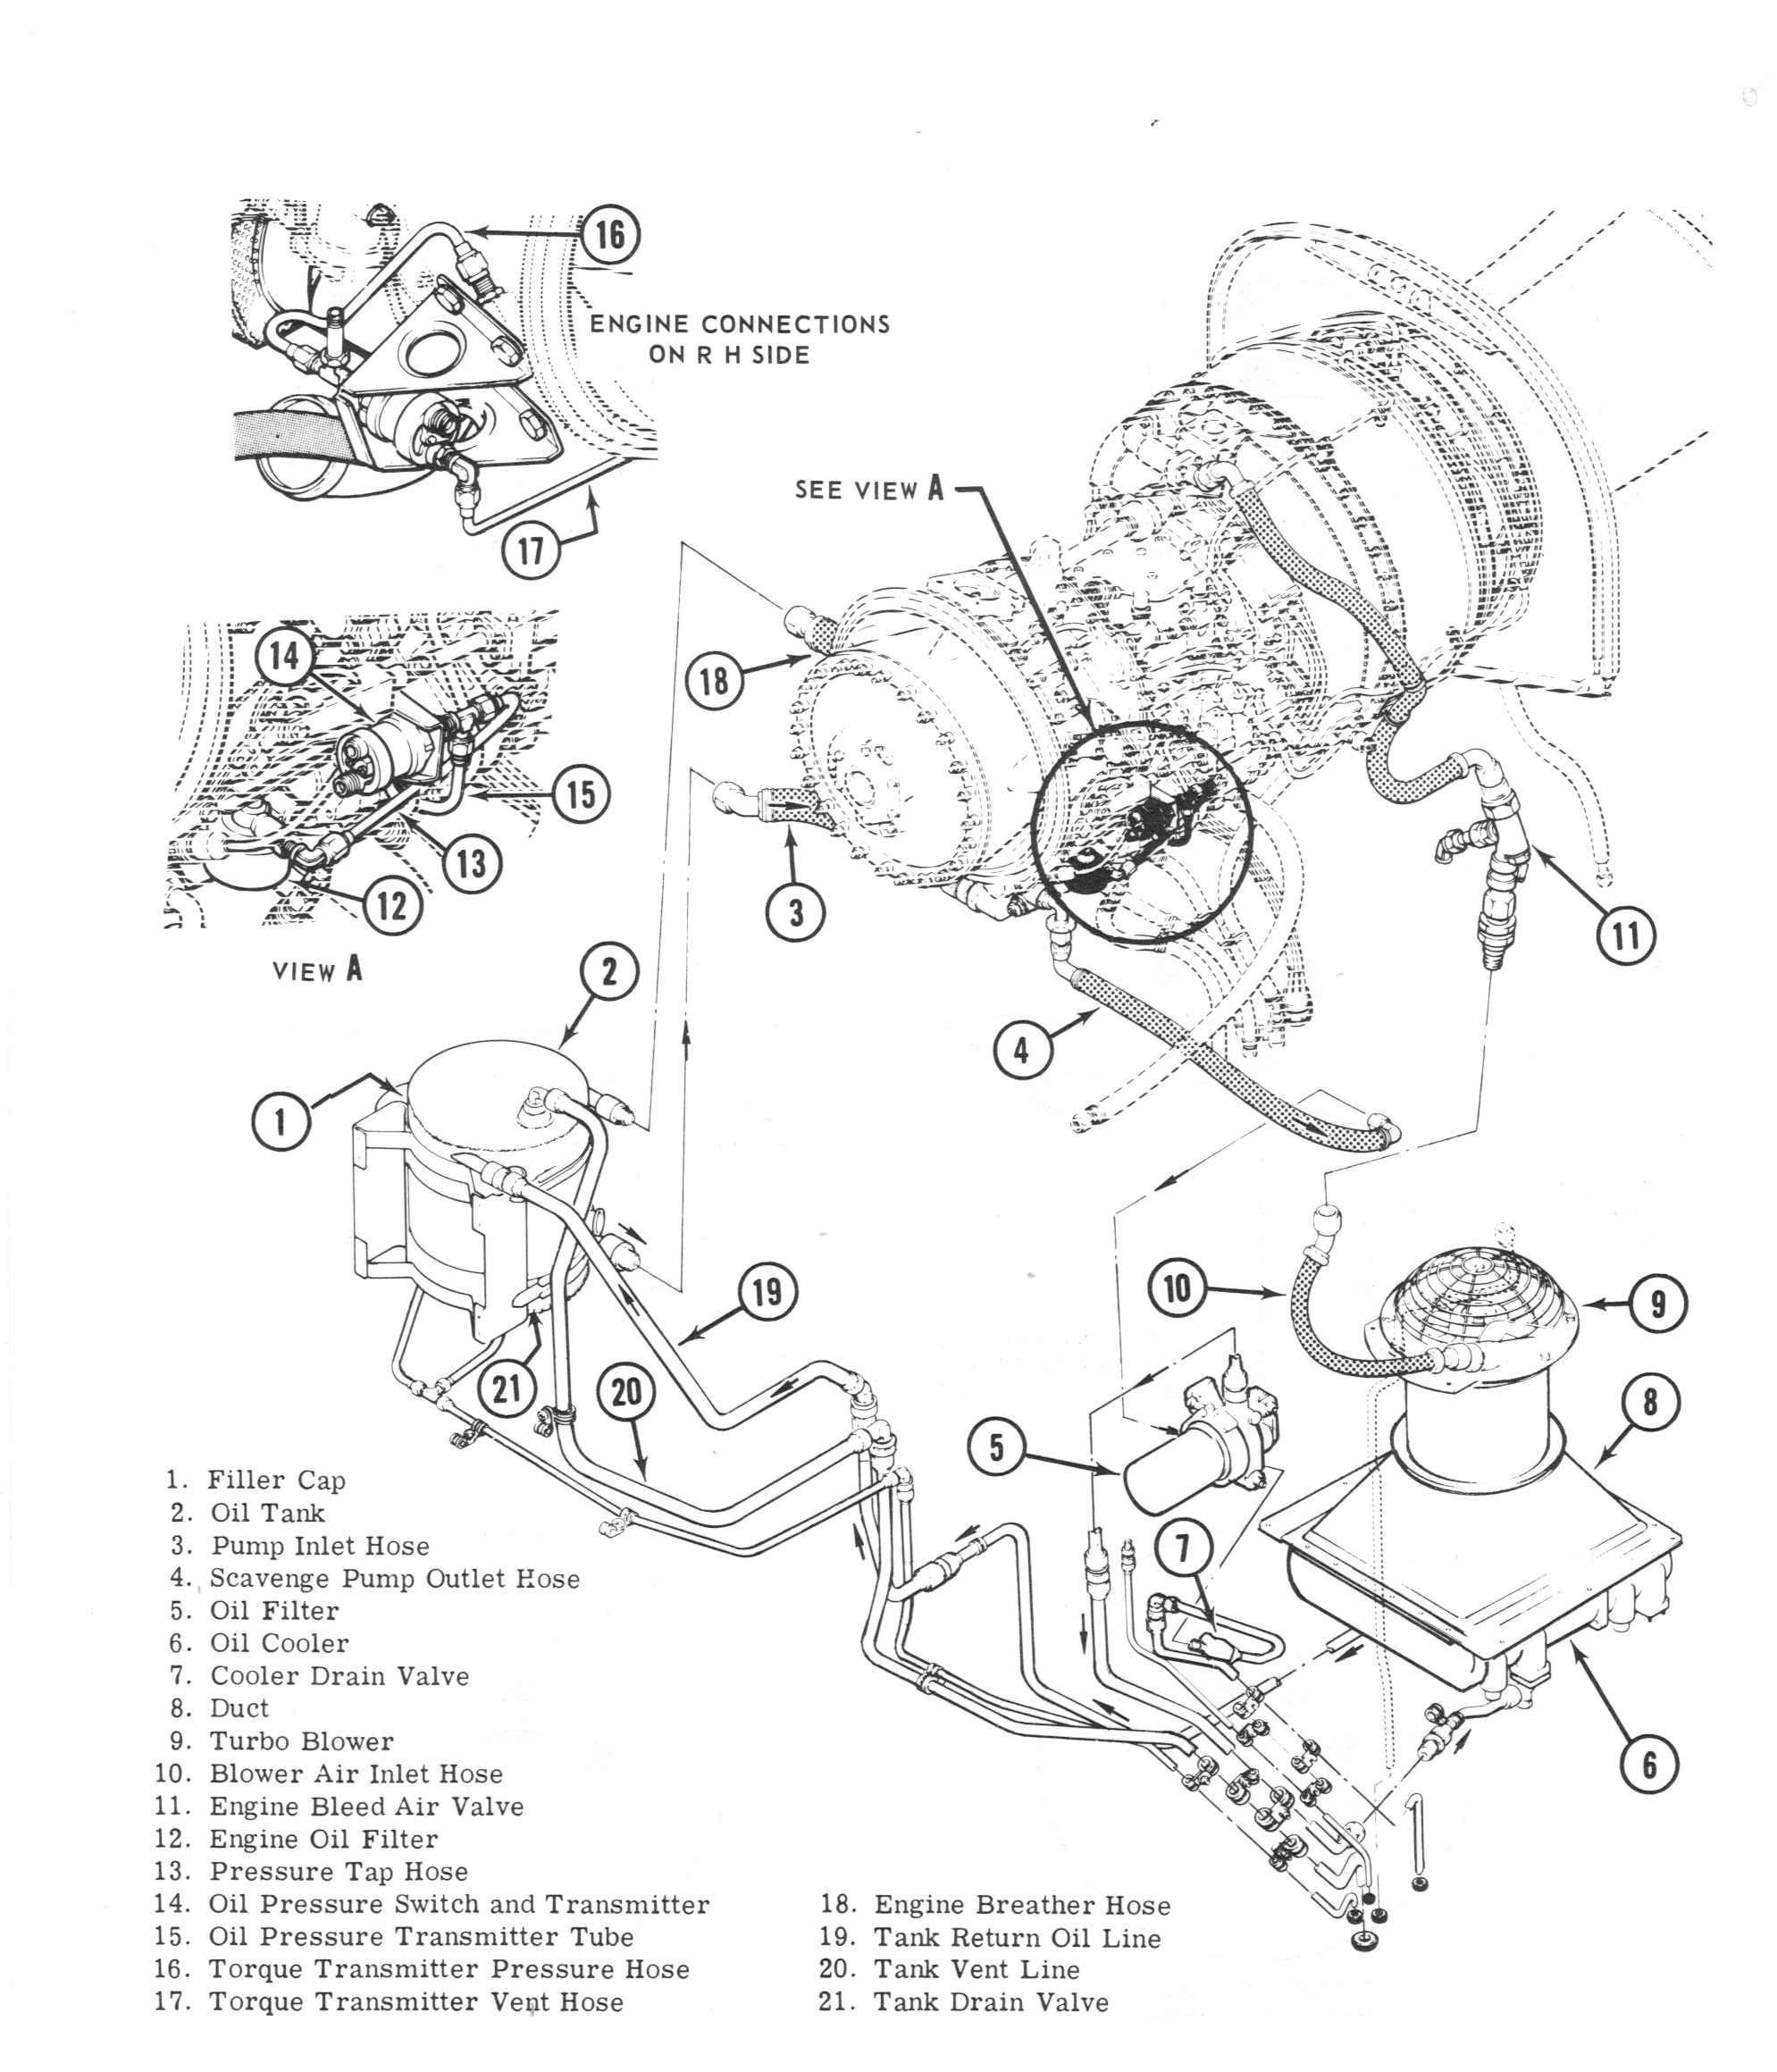 Engine Oil System Installation on Hydraulic Cylinder Exploded Diagram